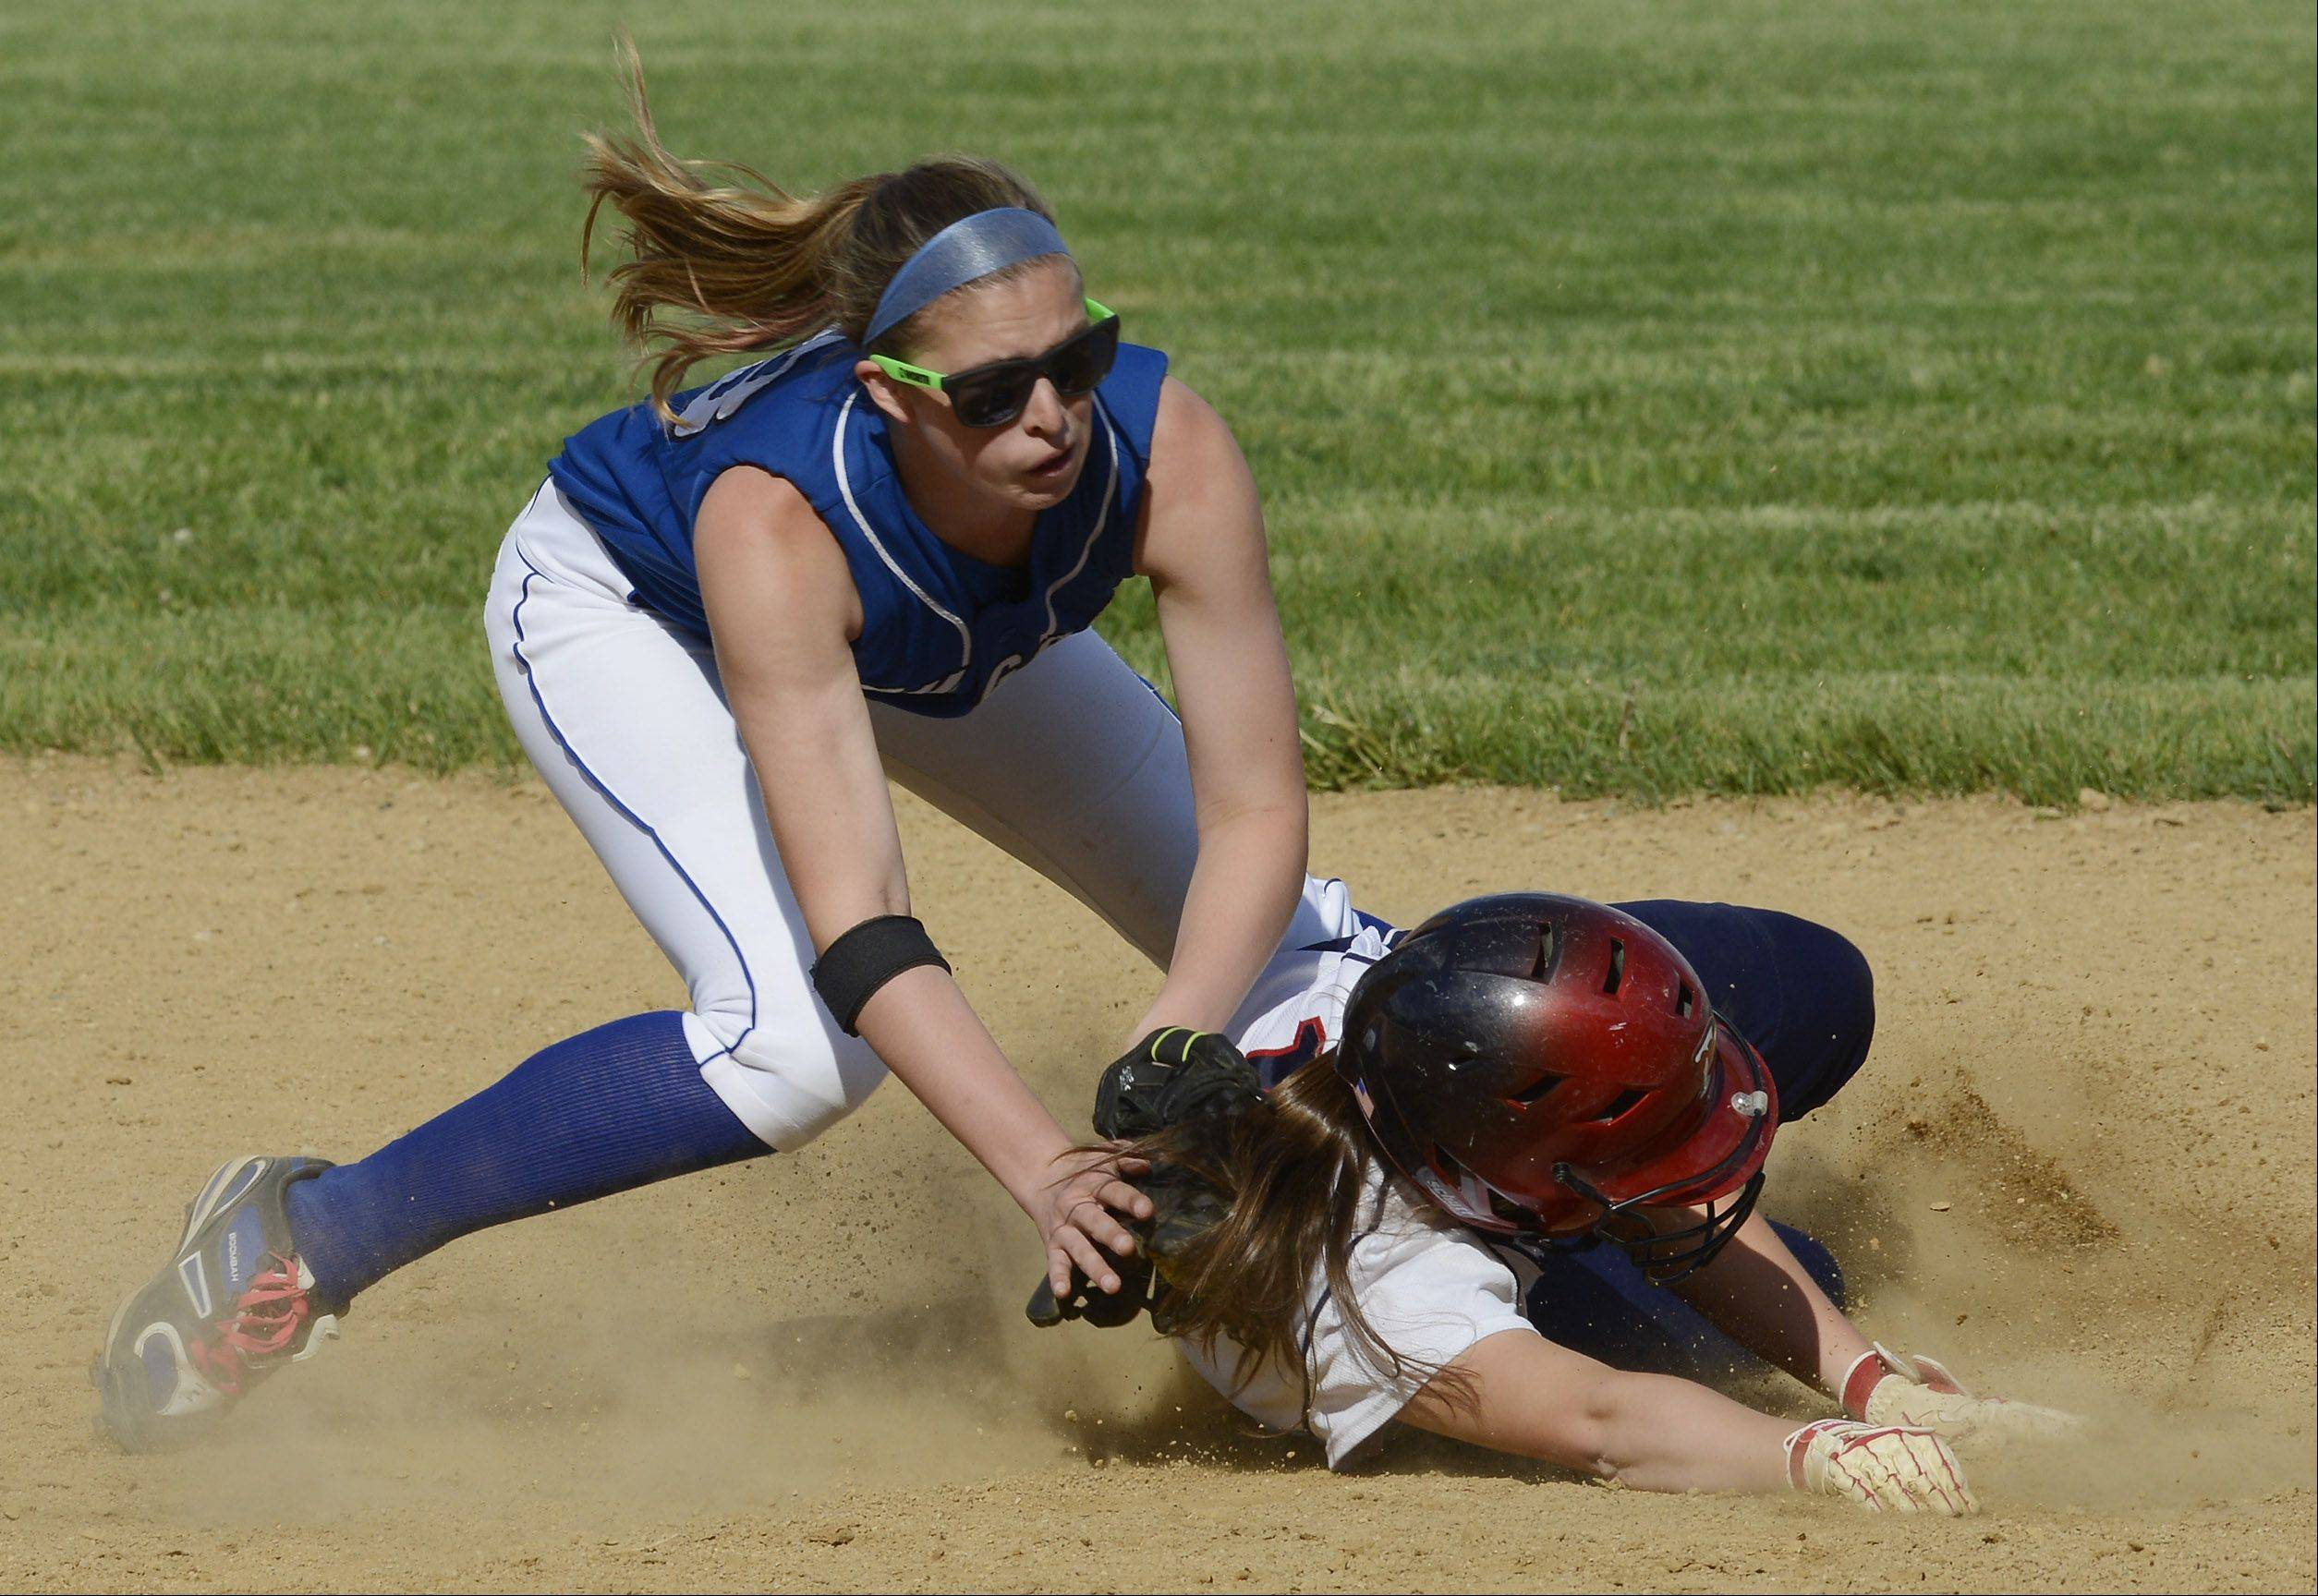 Vernon Hills' Dana Meline tags out St. Viator's Gina Mastrodomenico on a steal attempt during Tuesday's regional semifinal in Arlington Heights.